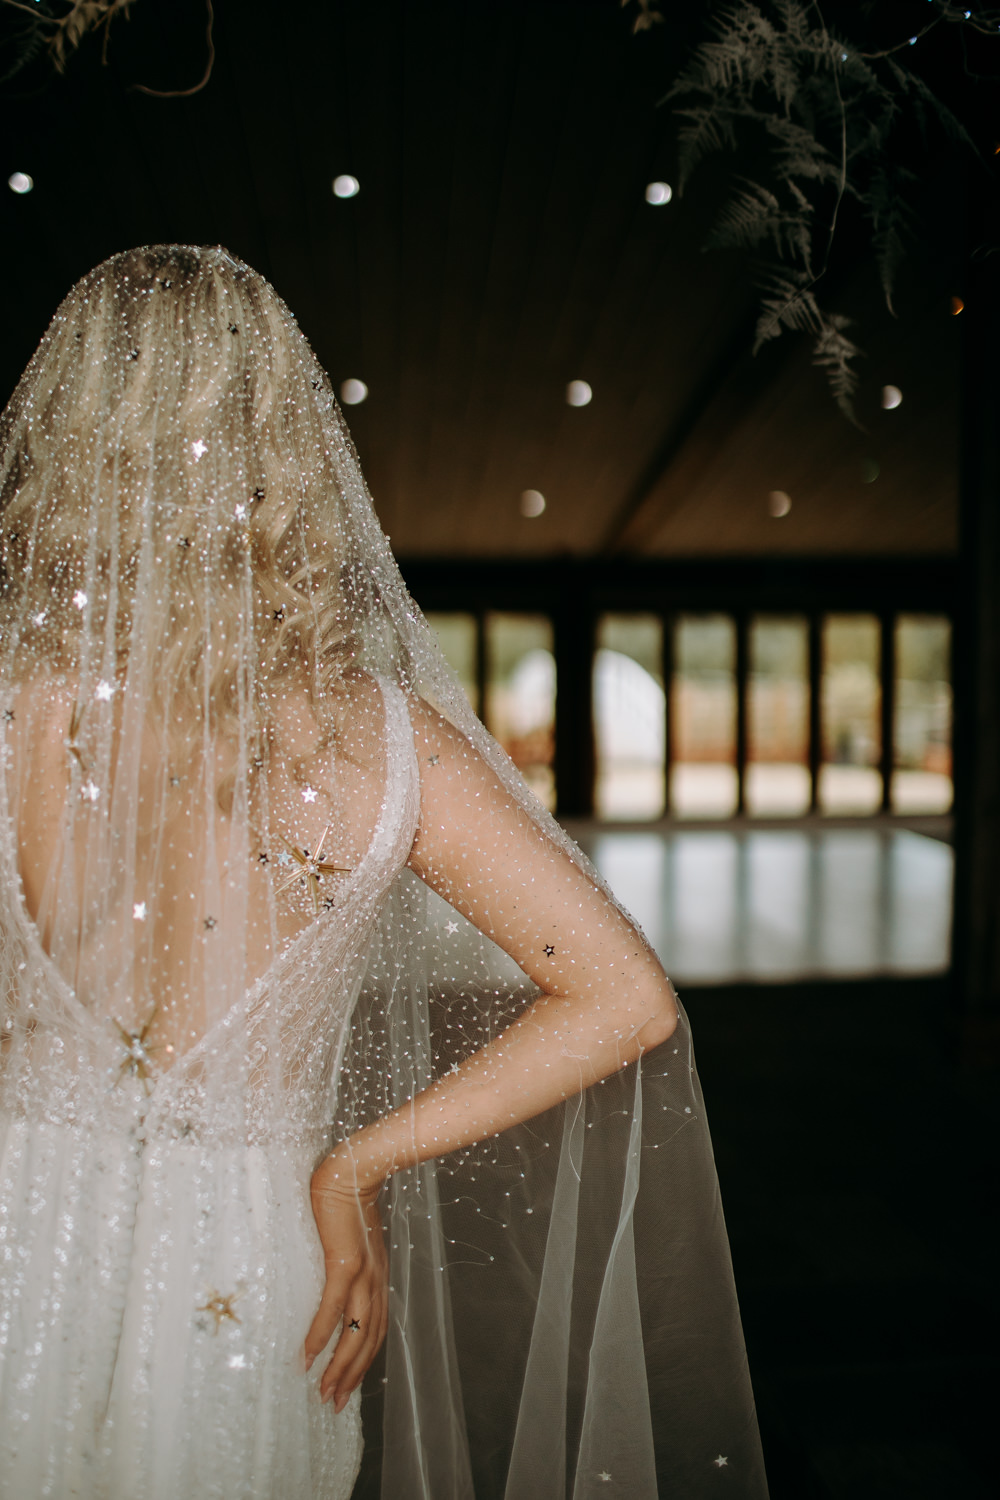 Dress Gown Bride Bridal Starry Veil Embroidered Gold Stars Sequins Celestial Wedding Ideas Christine Thirdwheeling